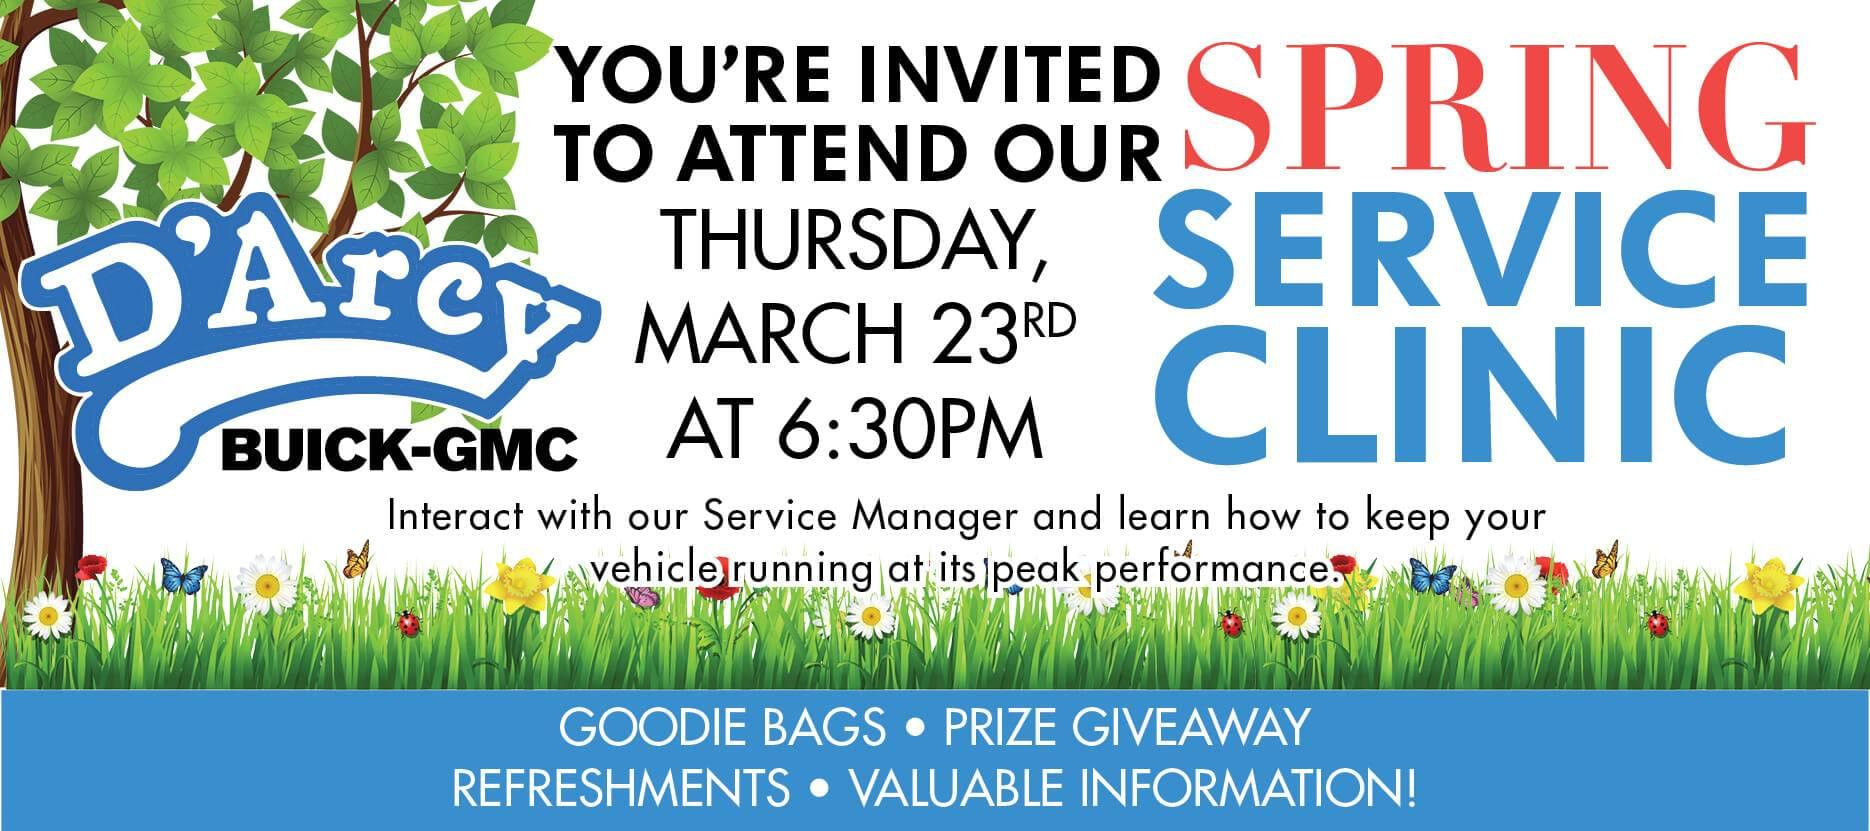 RSVP for our Spring Service Clinic on March 23rd at our dealership